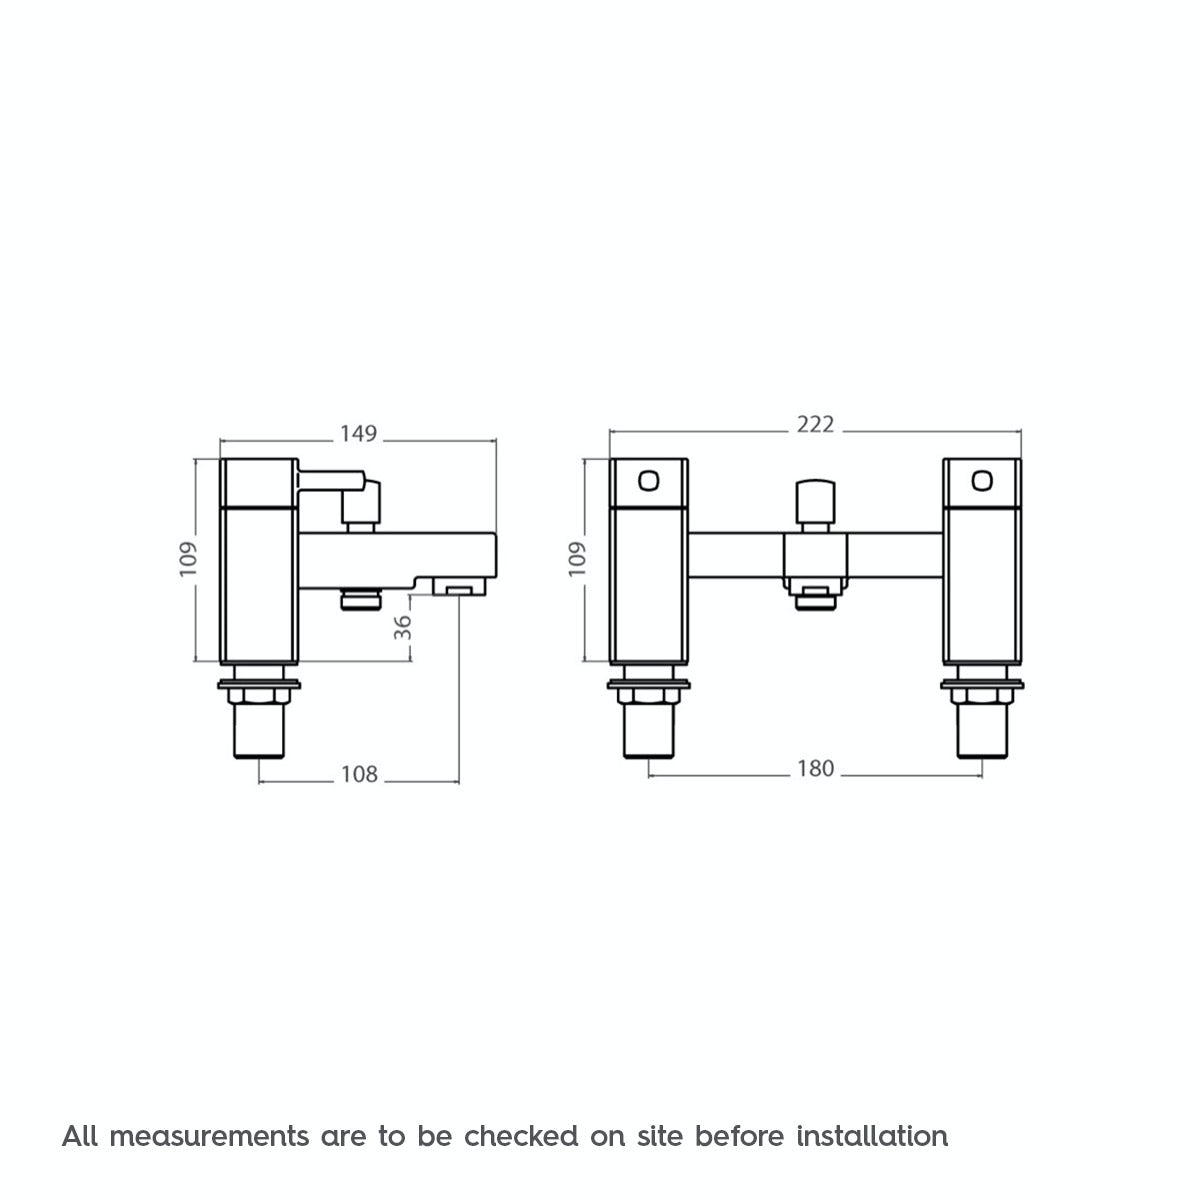 Dimensions for Orchard Derwent bath shower mixer tap